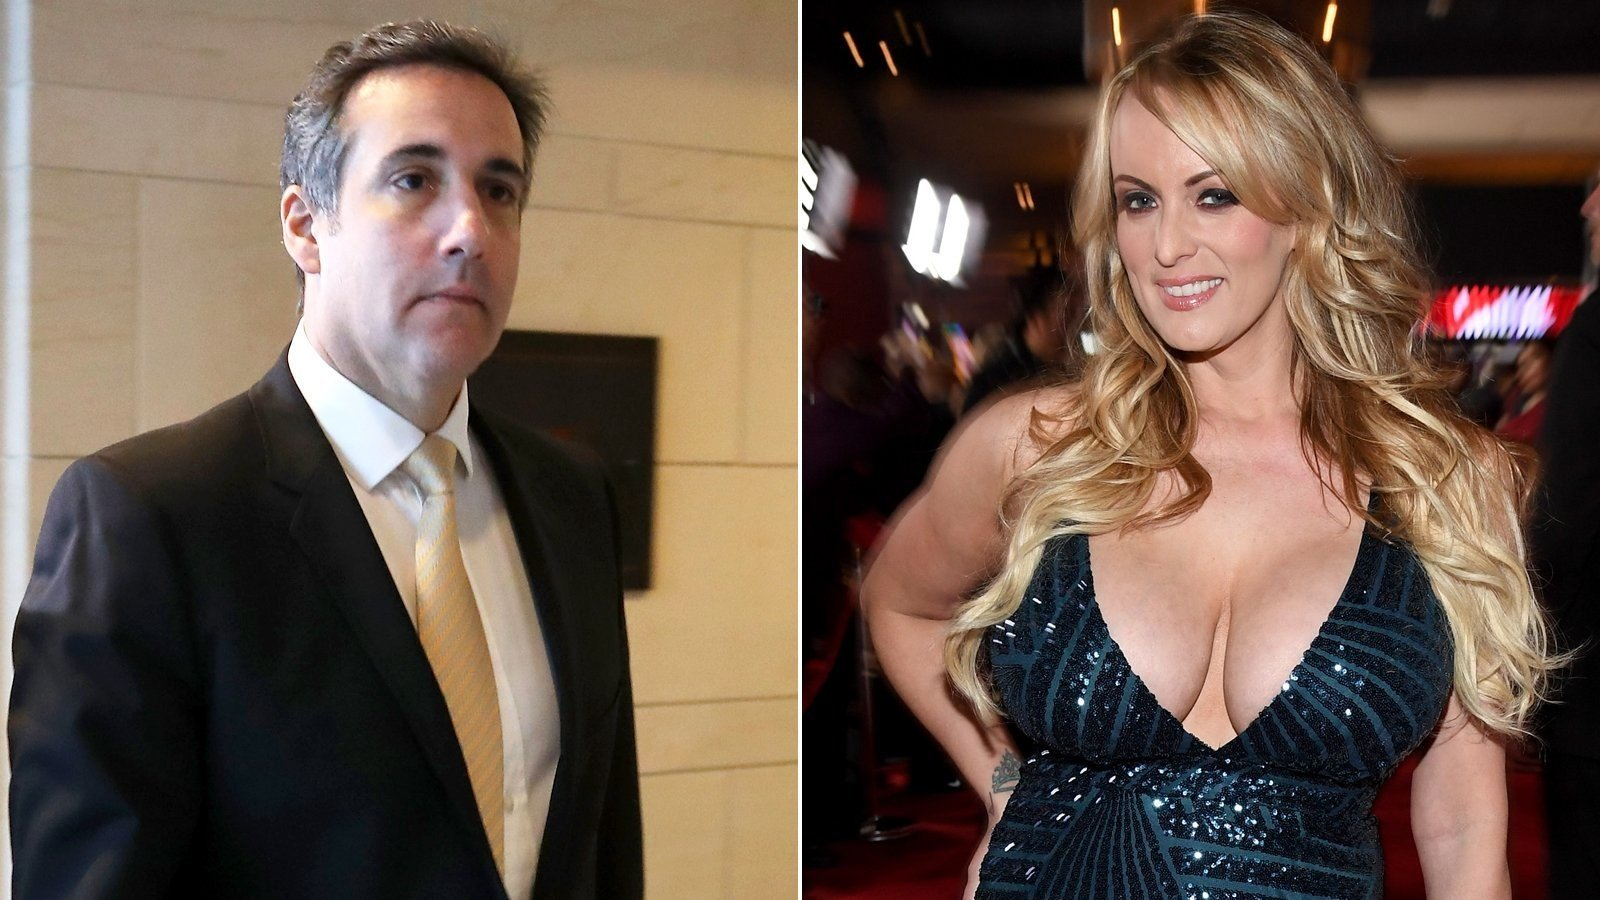 Adult film actress Stormy Daniels on Wednesday launched a new lawsuit against her former attorney Keith Davidson as well as President Donald Trump's personal lawyer Michael Cohen saying the two men